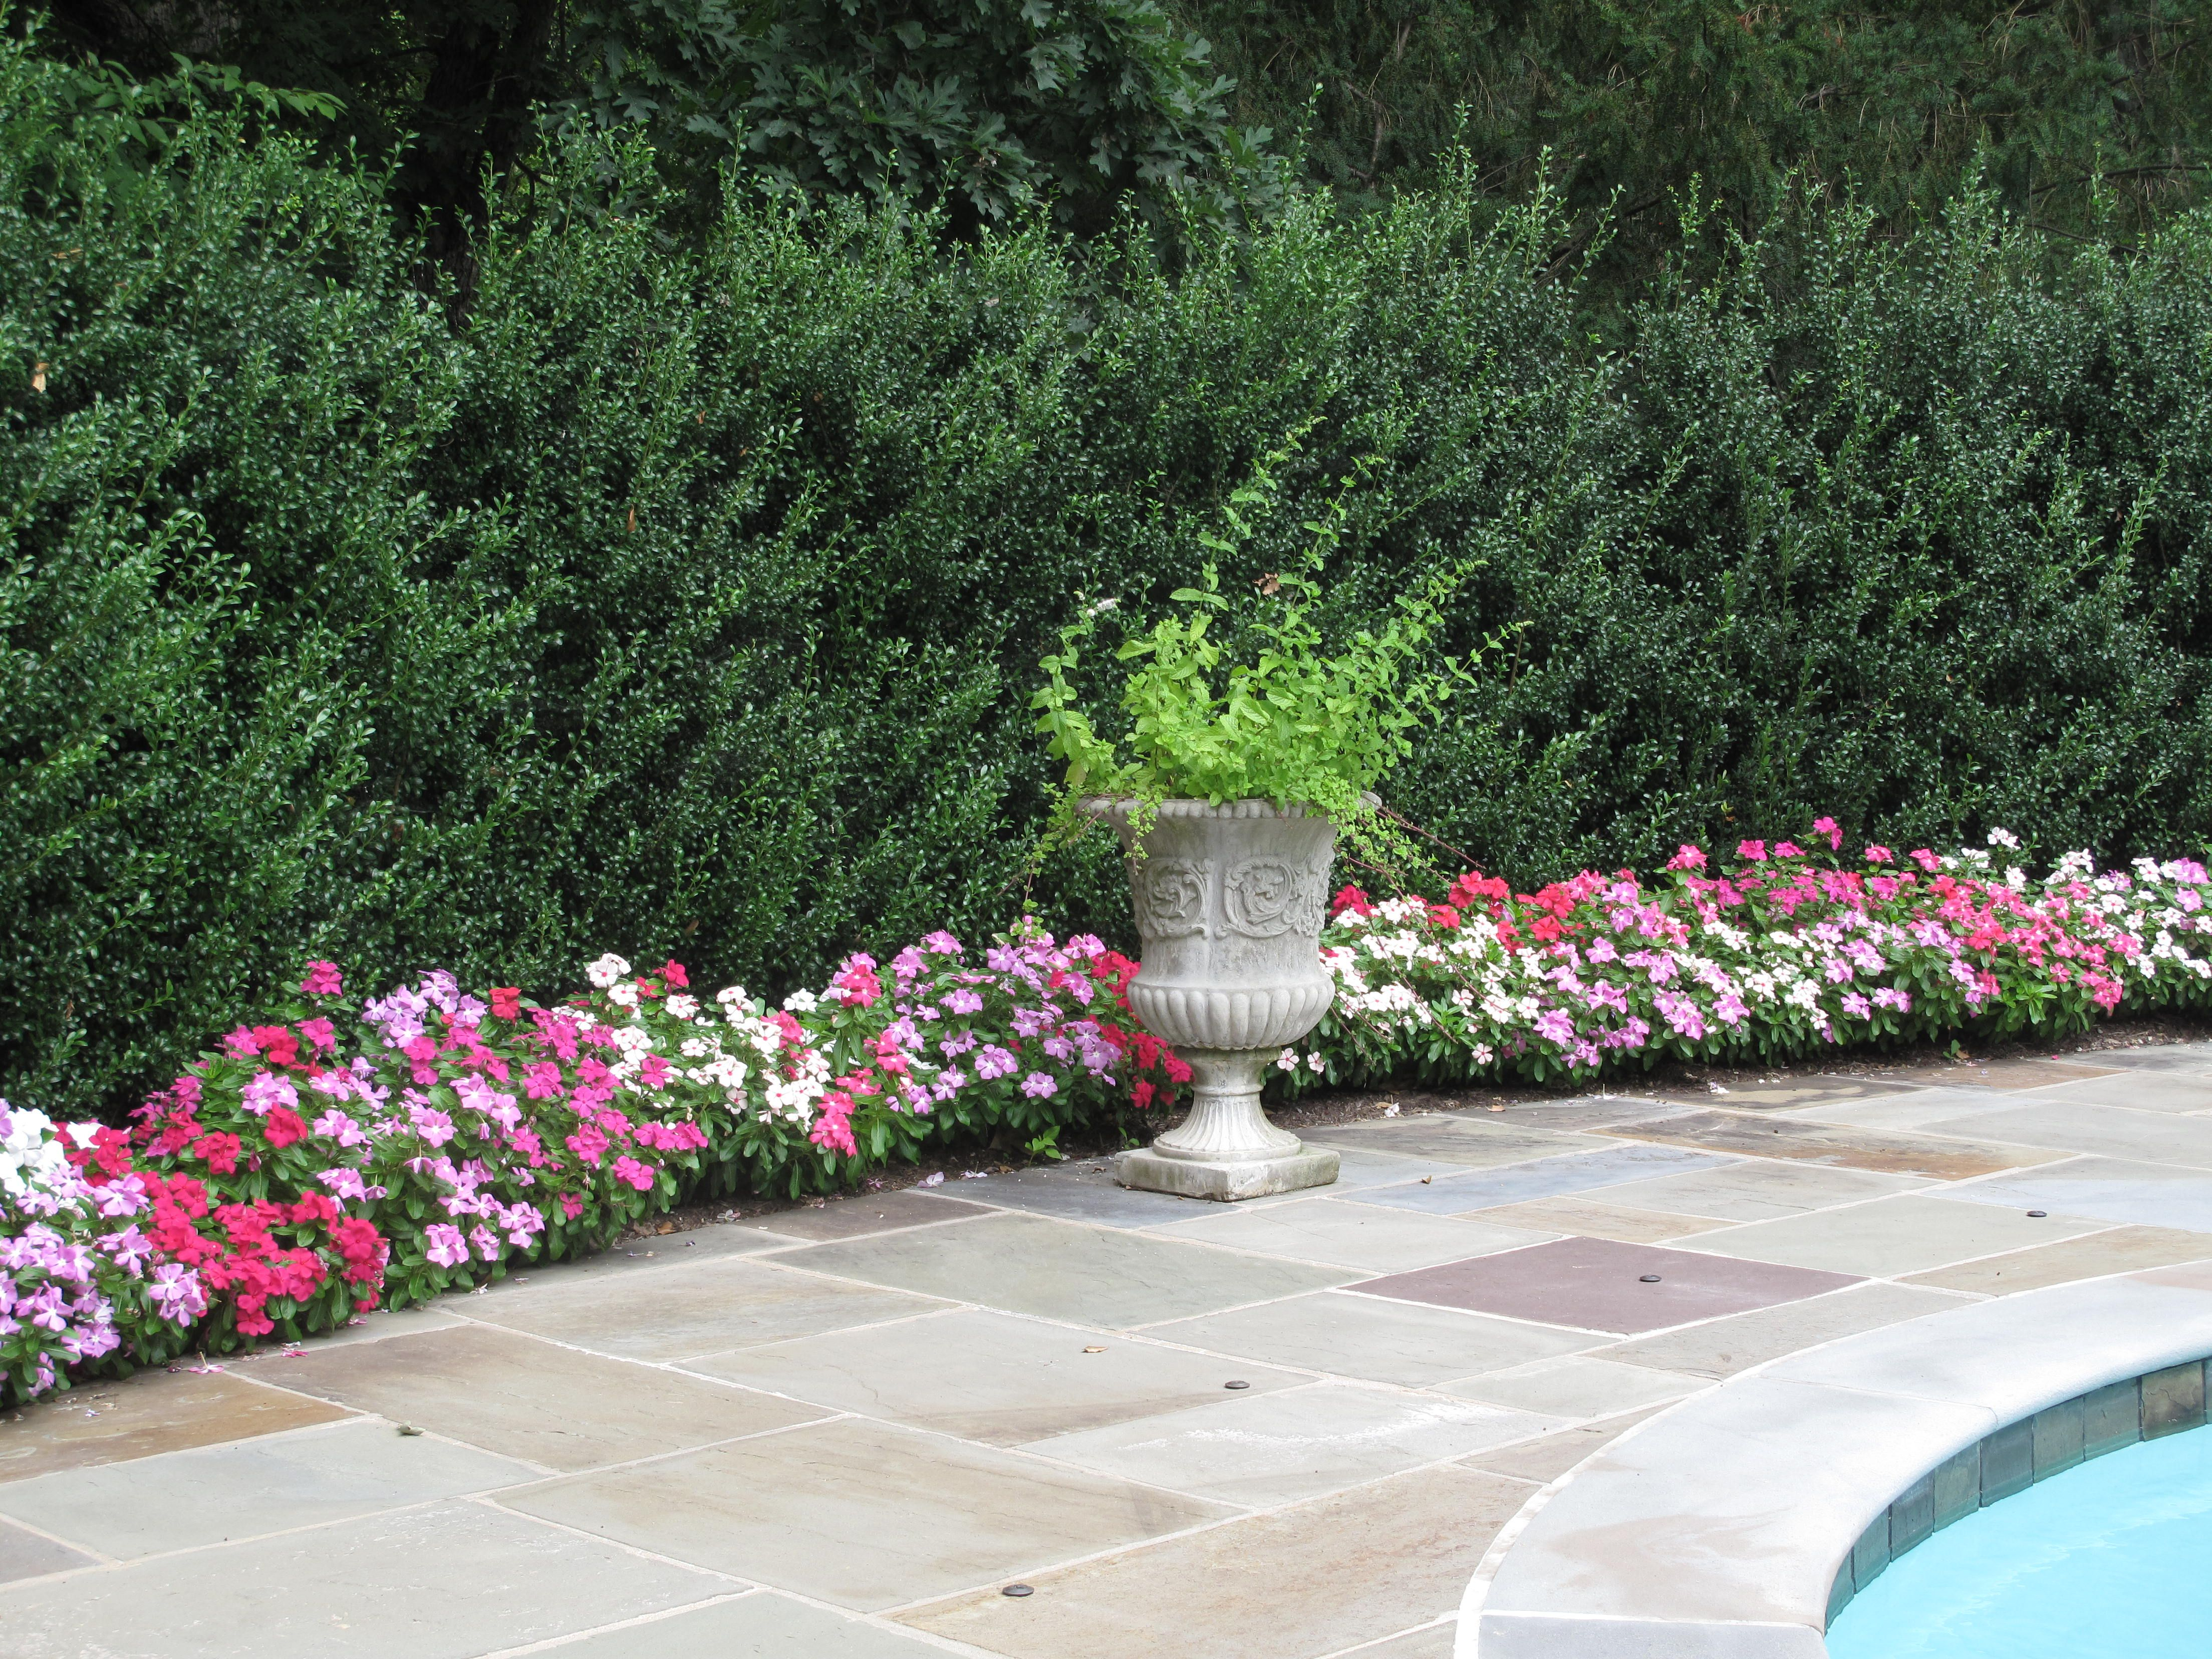 Pool Patio And Flower Bed Home Sweet Home Pinterest 400 x 300